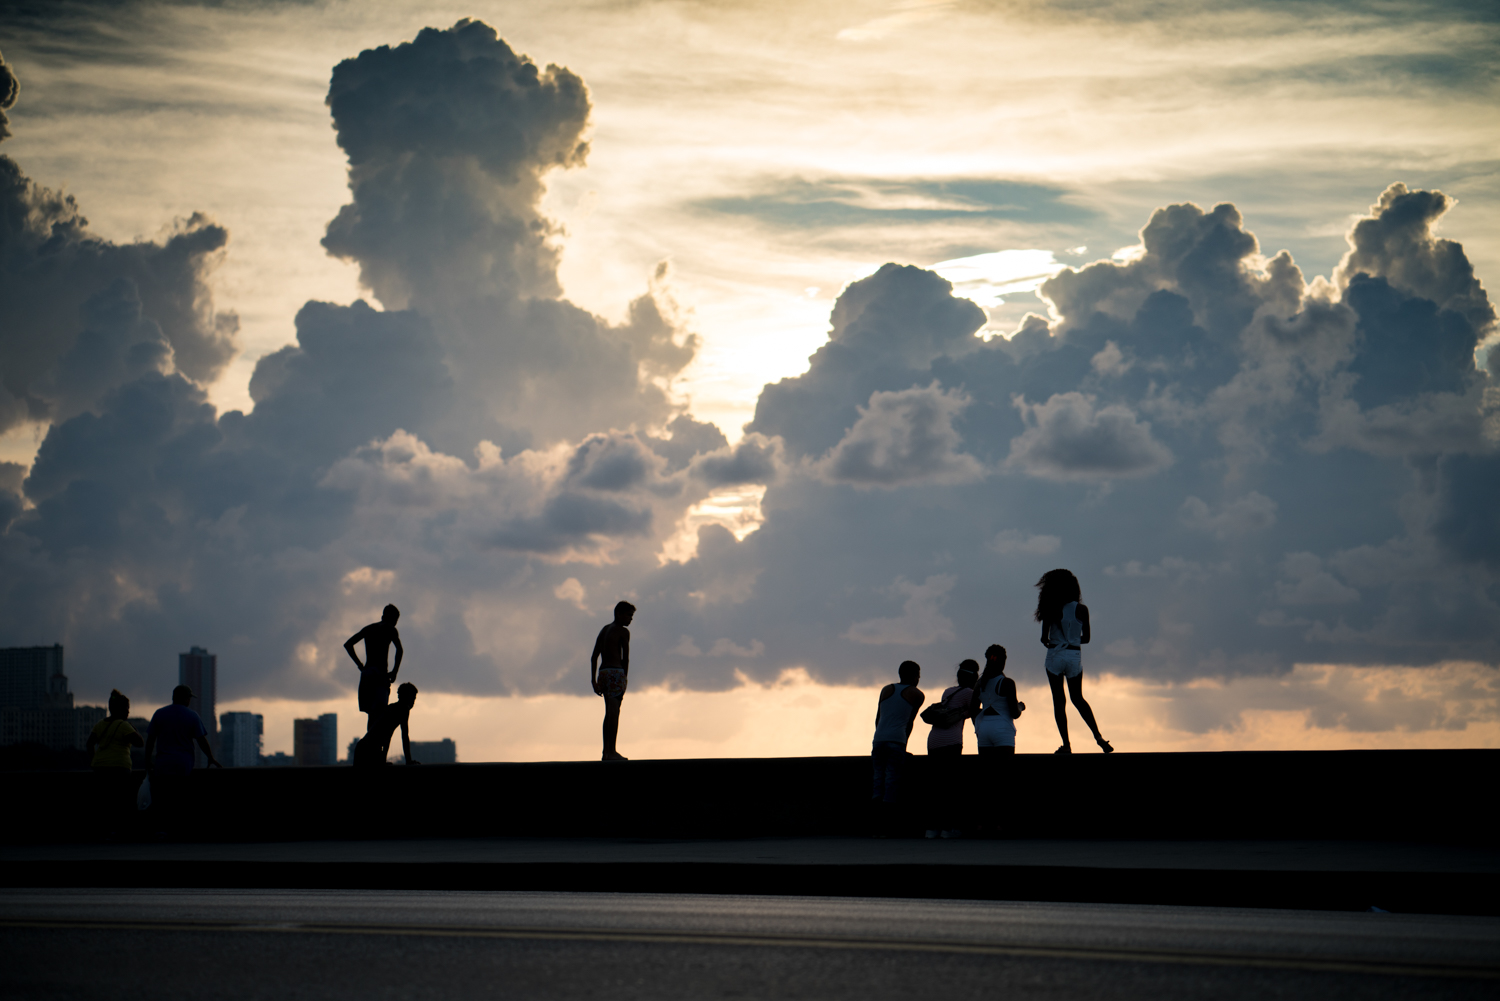 Everyone catching the amazing sunset on the famous Malecon.  Sony A7RII, Zeiss Batis 85mm f/1.8 (iso200, f/2.2, 1/6400s)